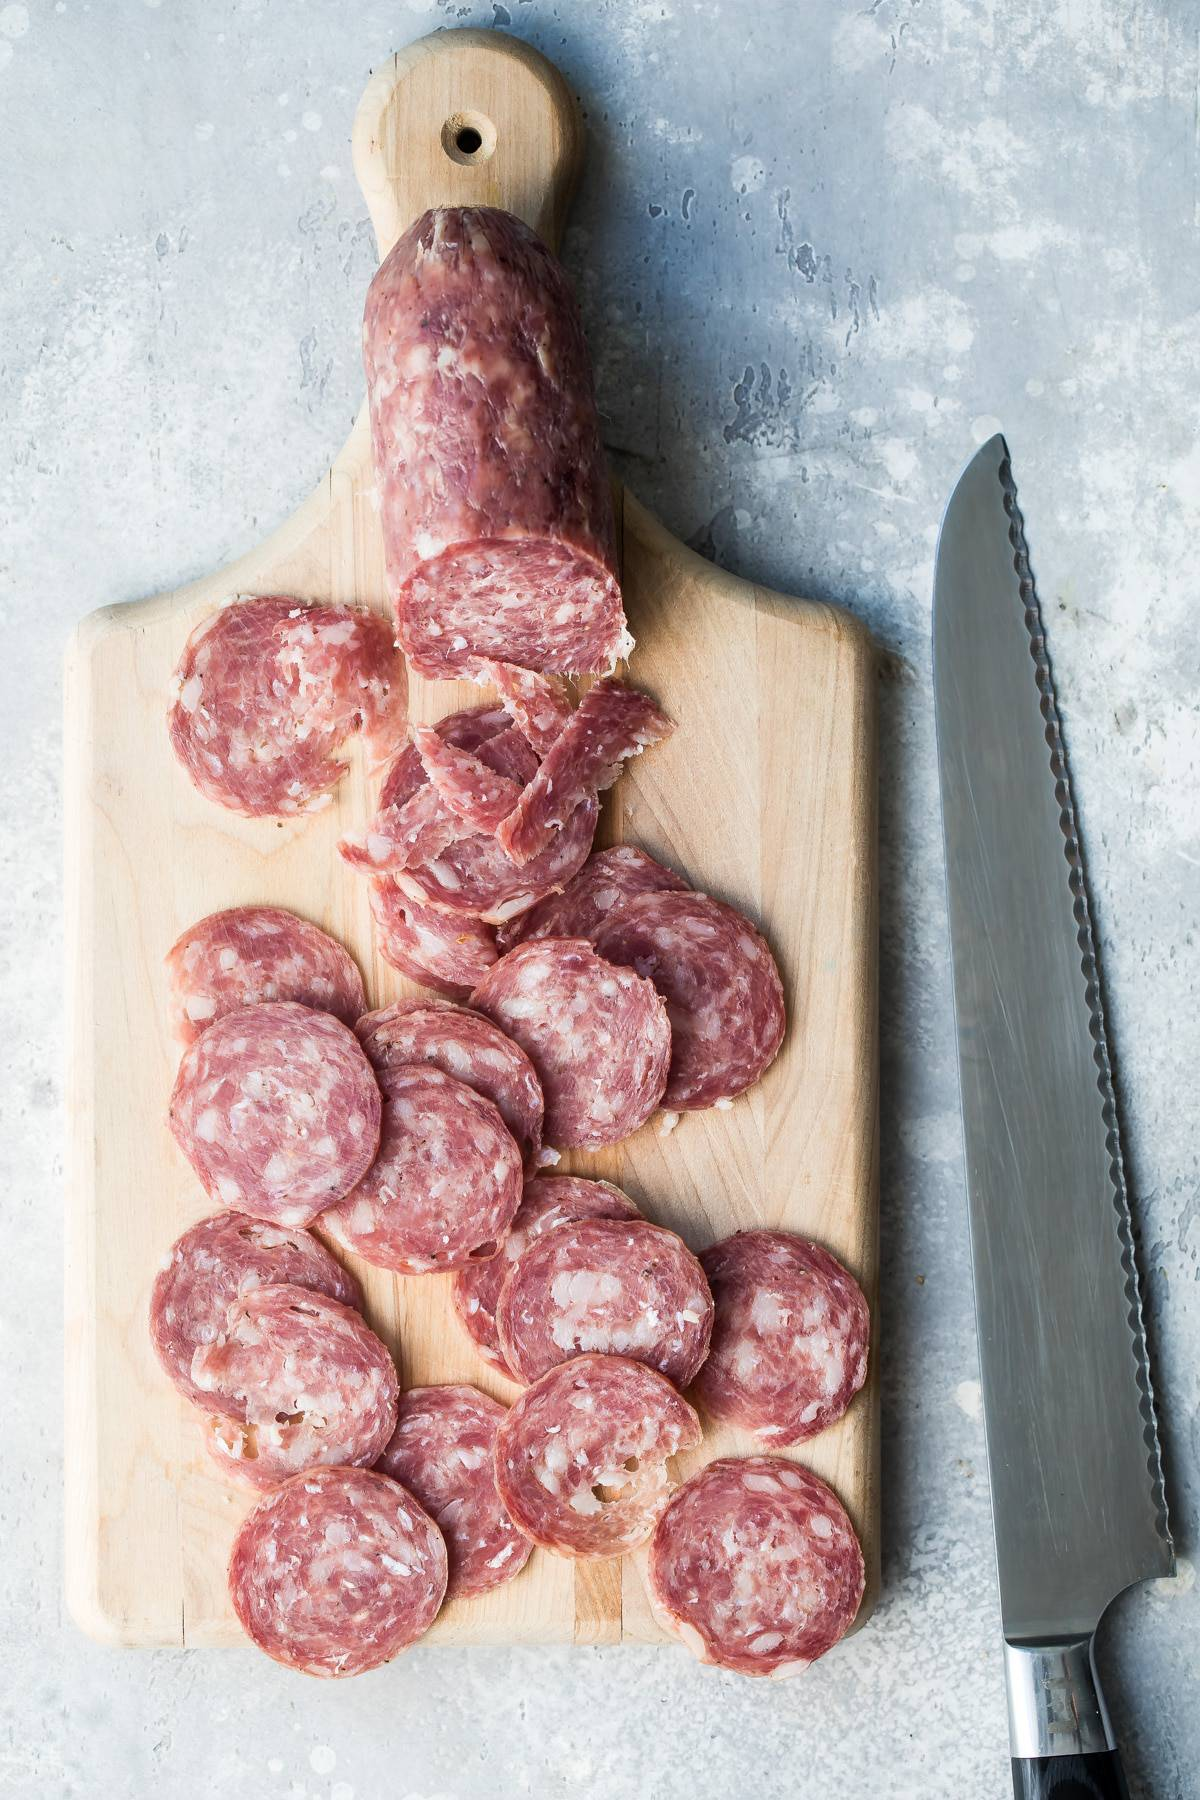 Uncured Soppressata is one of the best charcuterie meats